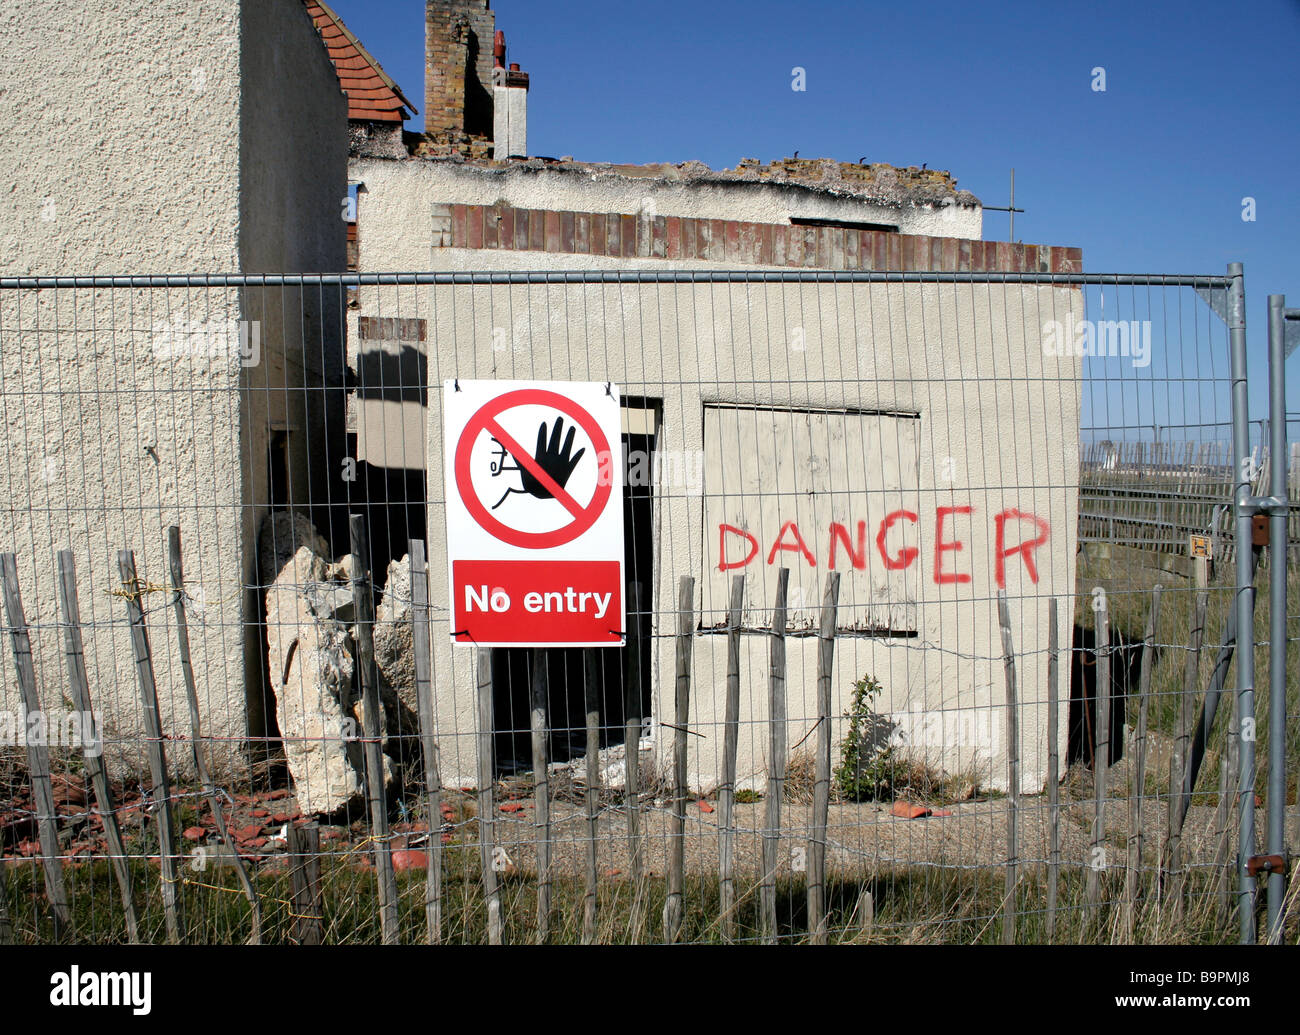 Warning sign attached to fencing outside a burnt out derelict building. It reads ' No entry' - Stock Image